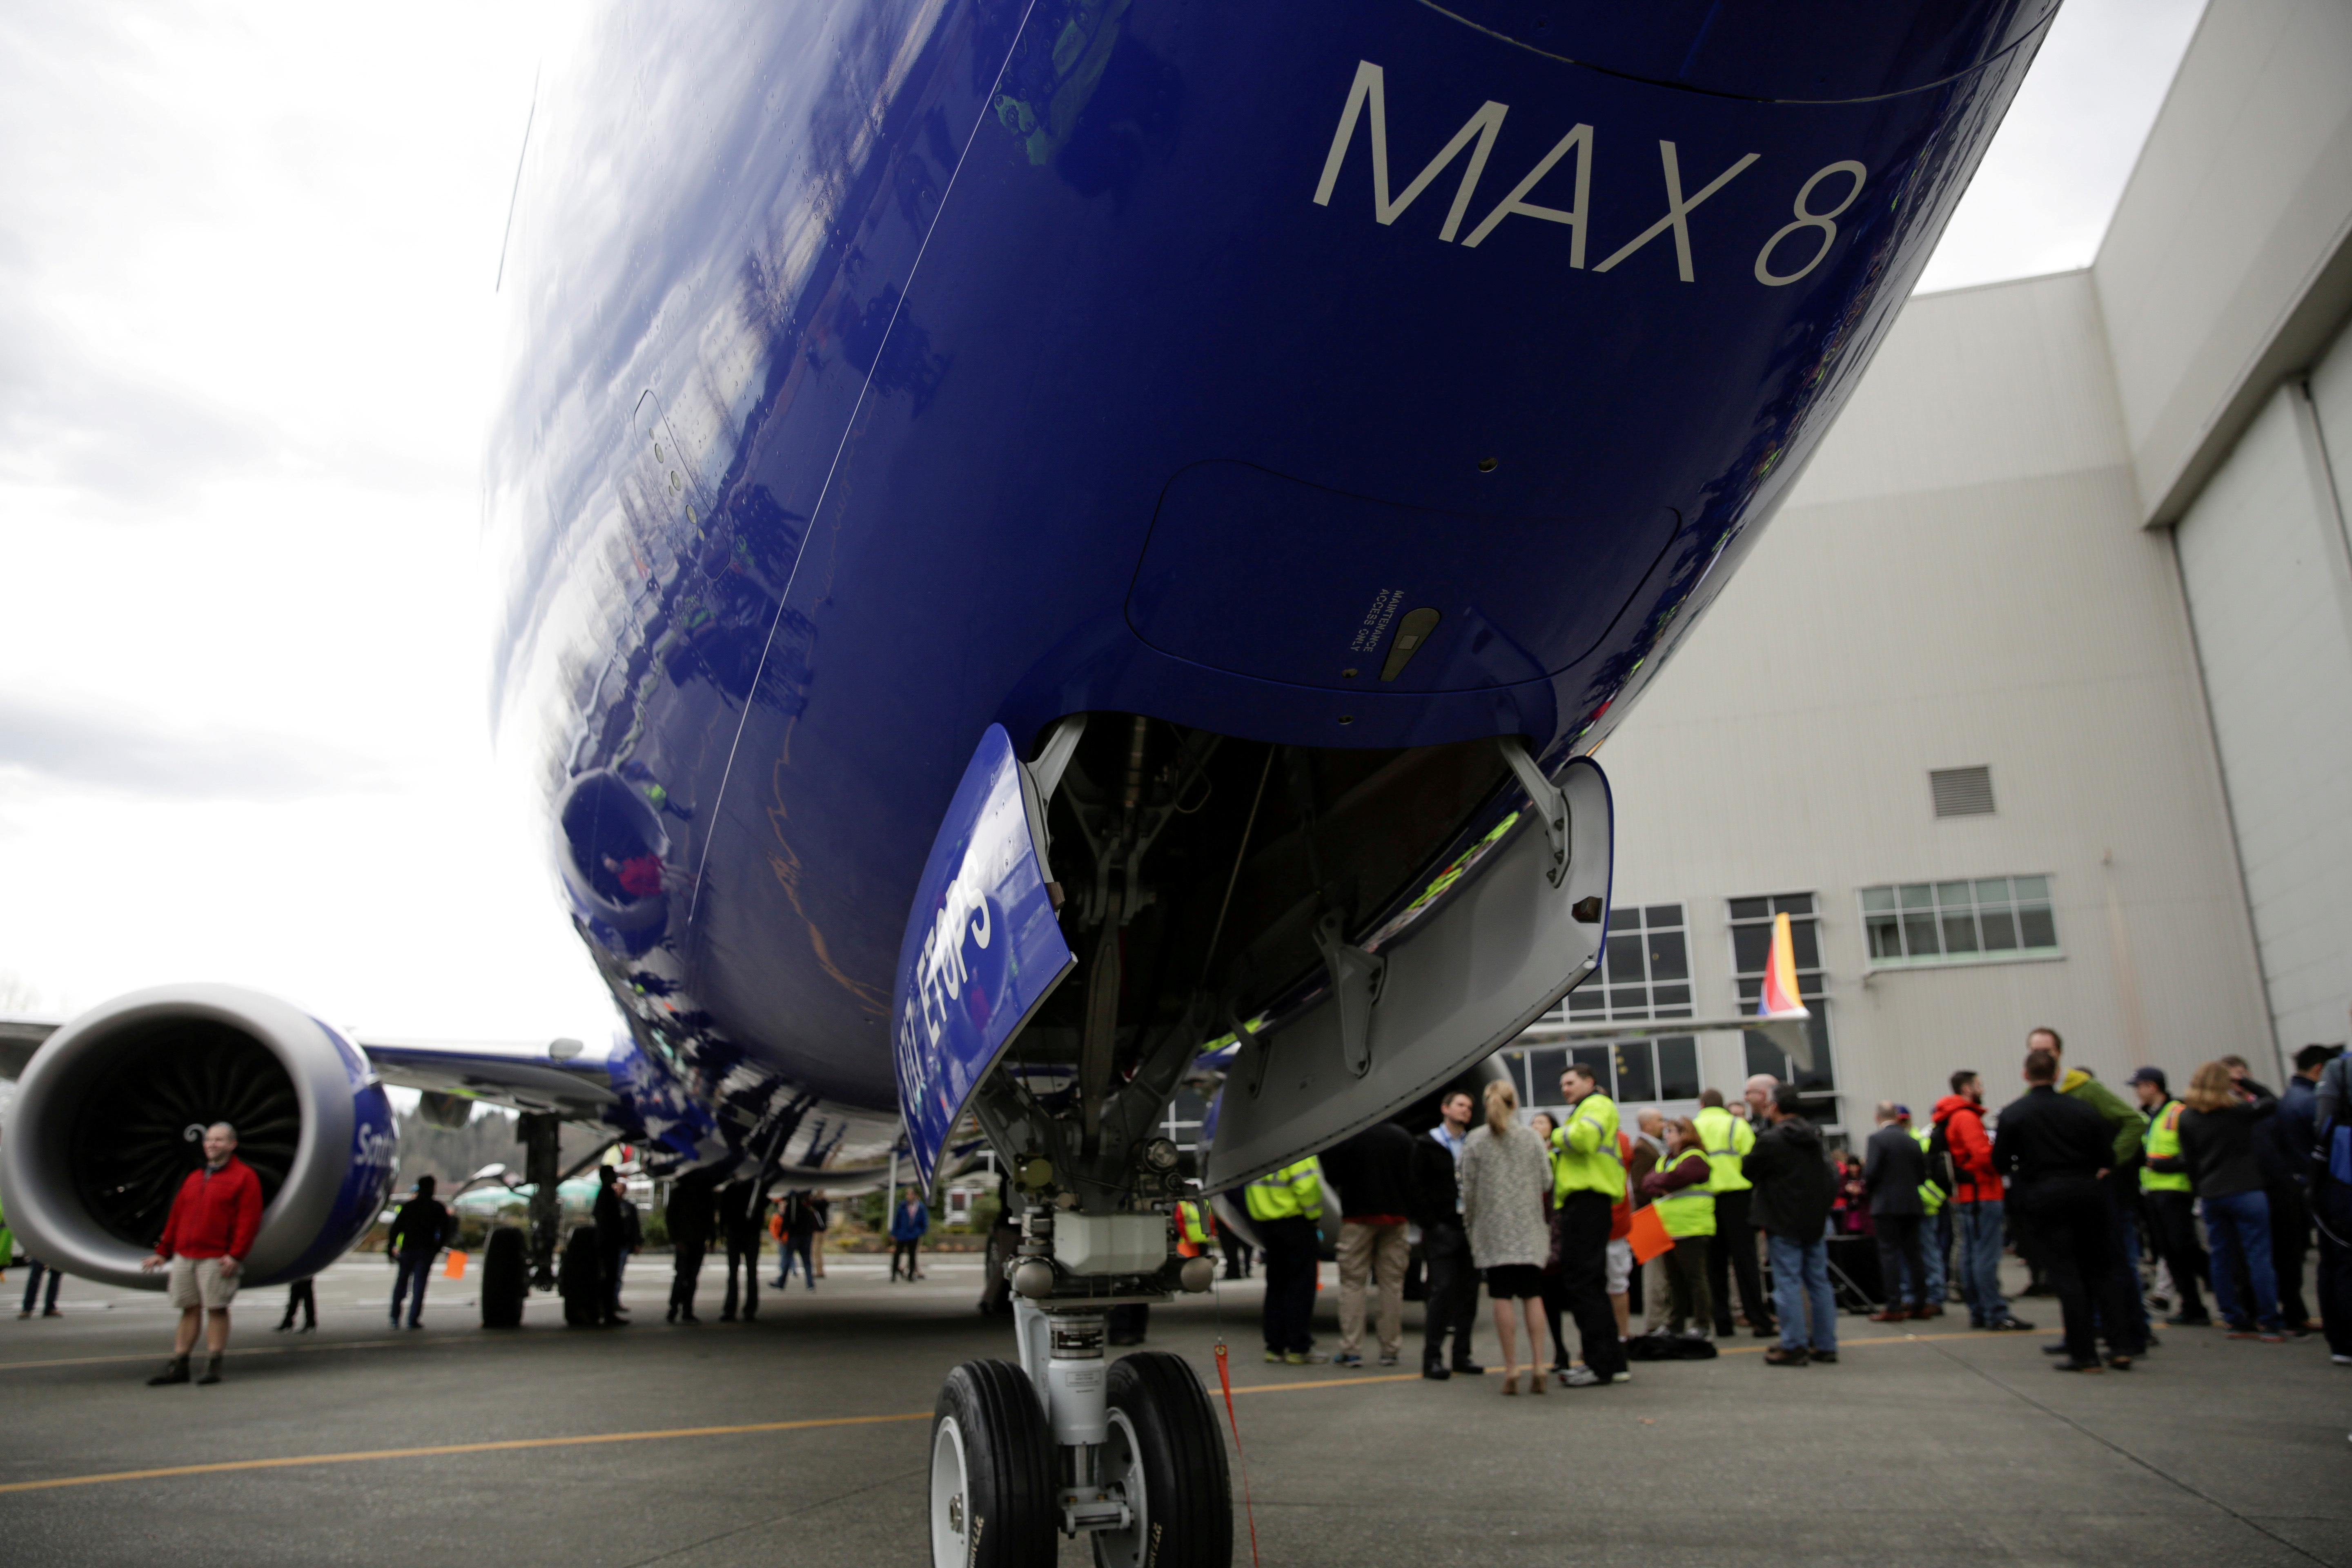 U.S. airlines stand by 737 MAX as some customers, nations reject it